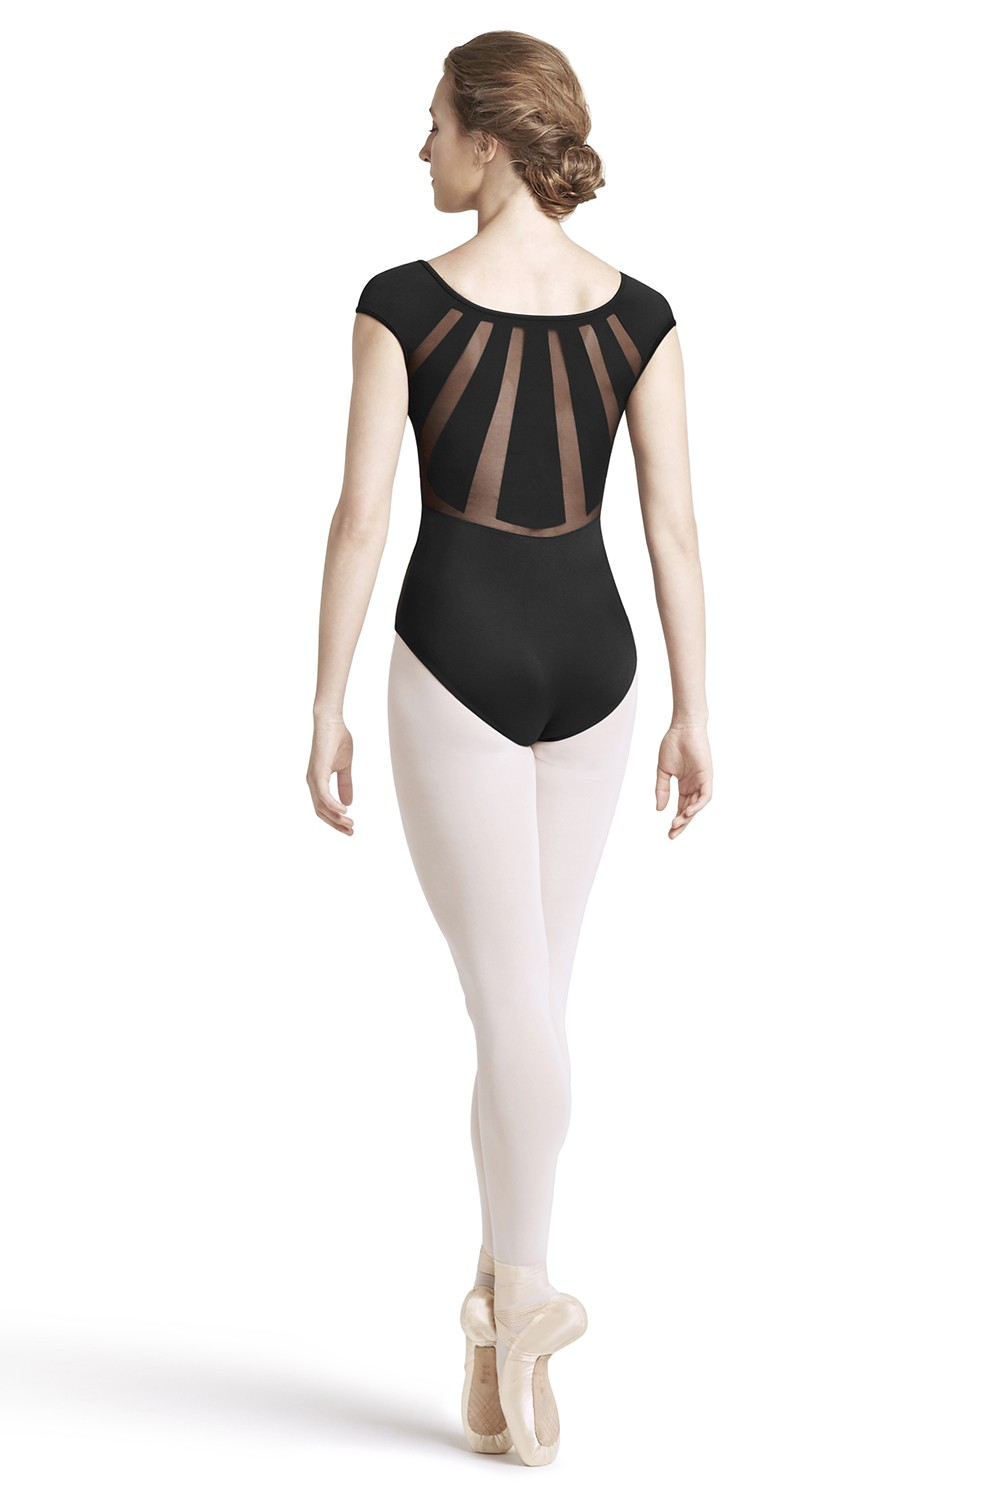 Apsara Womens Short Sleeve Leotards